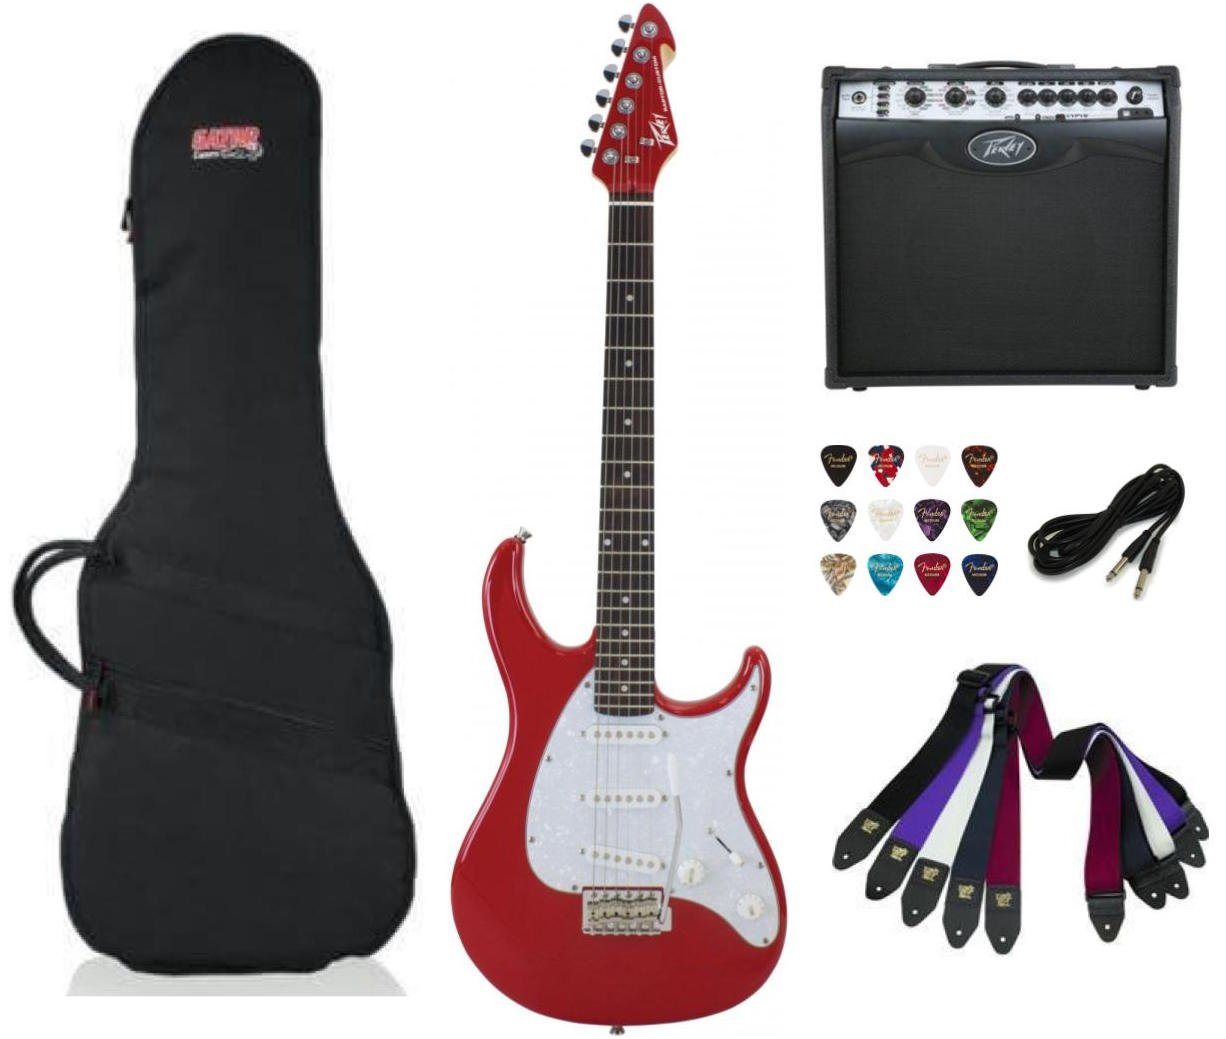 Peavey Raptor Custom Electric Guitar SSS - Red Package Deal with Amplifier, Gig Bag, Cable, Straps and Picks